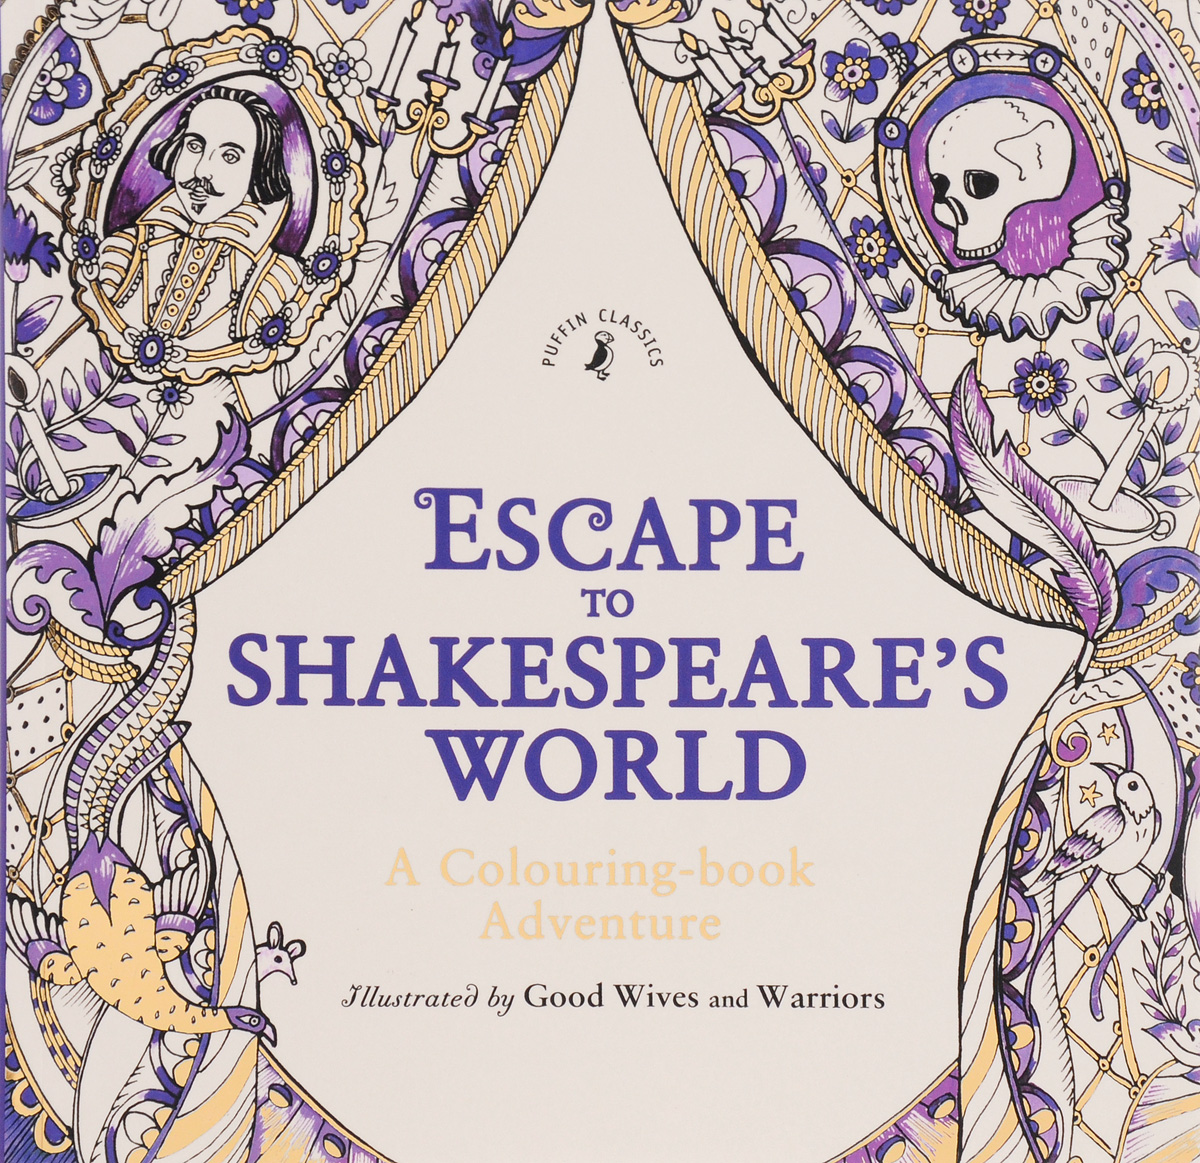 Escape to Shakespeare's World: A Colouring Book Adventure shakespeare william rdr cd [lv 2] romeo and juliet